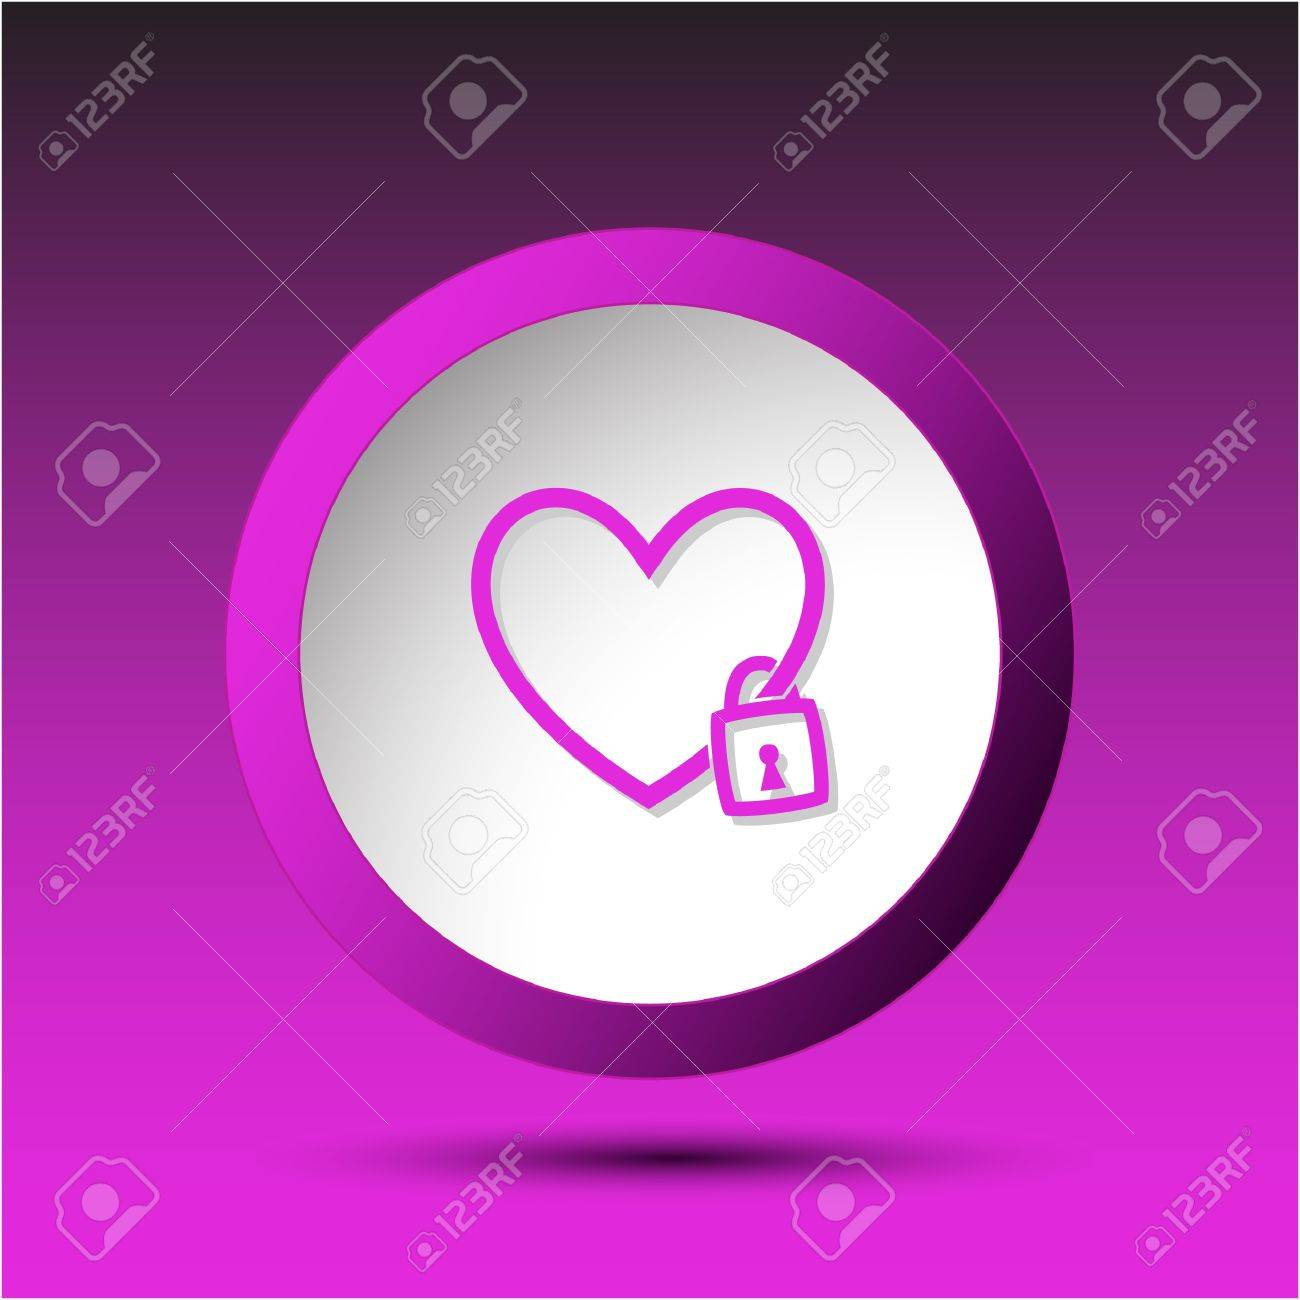 Closed heart. Plastic button. illustration. Stock Illustration - 17163687